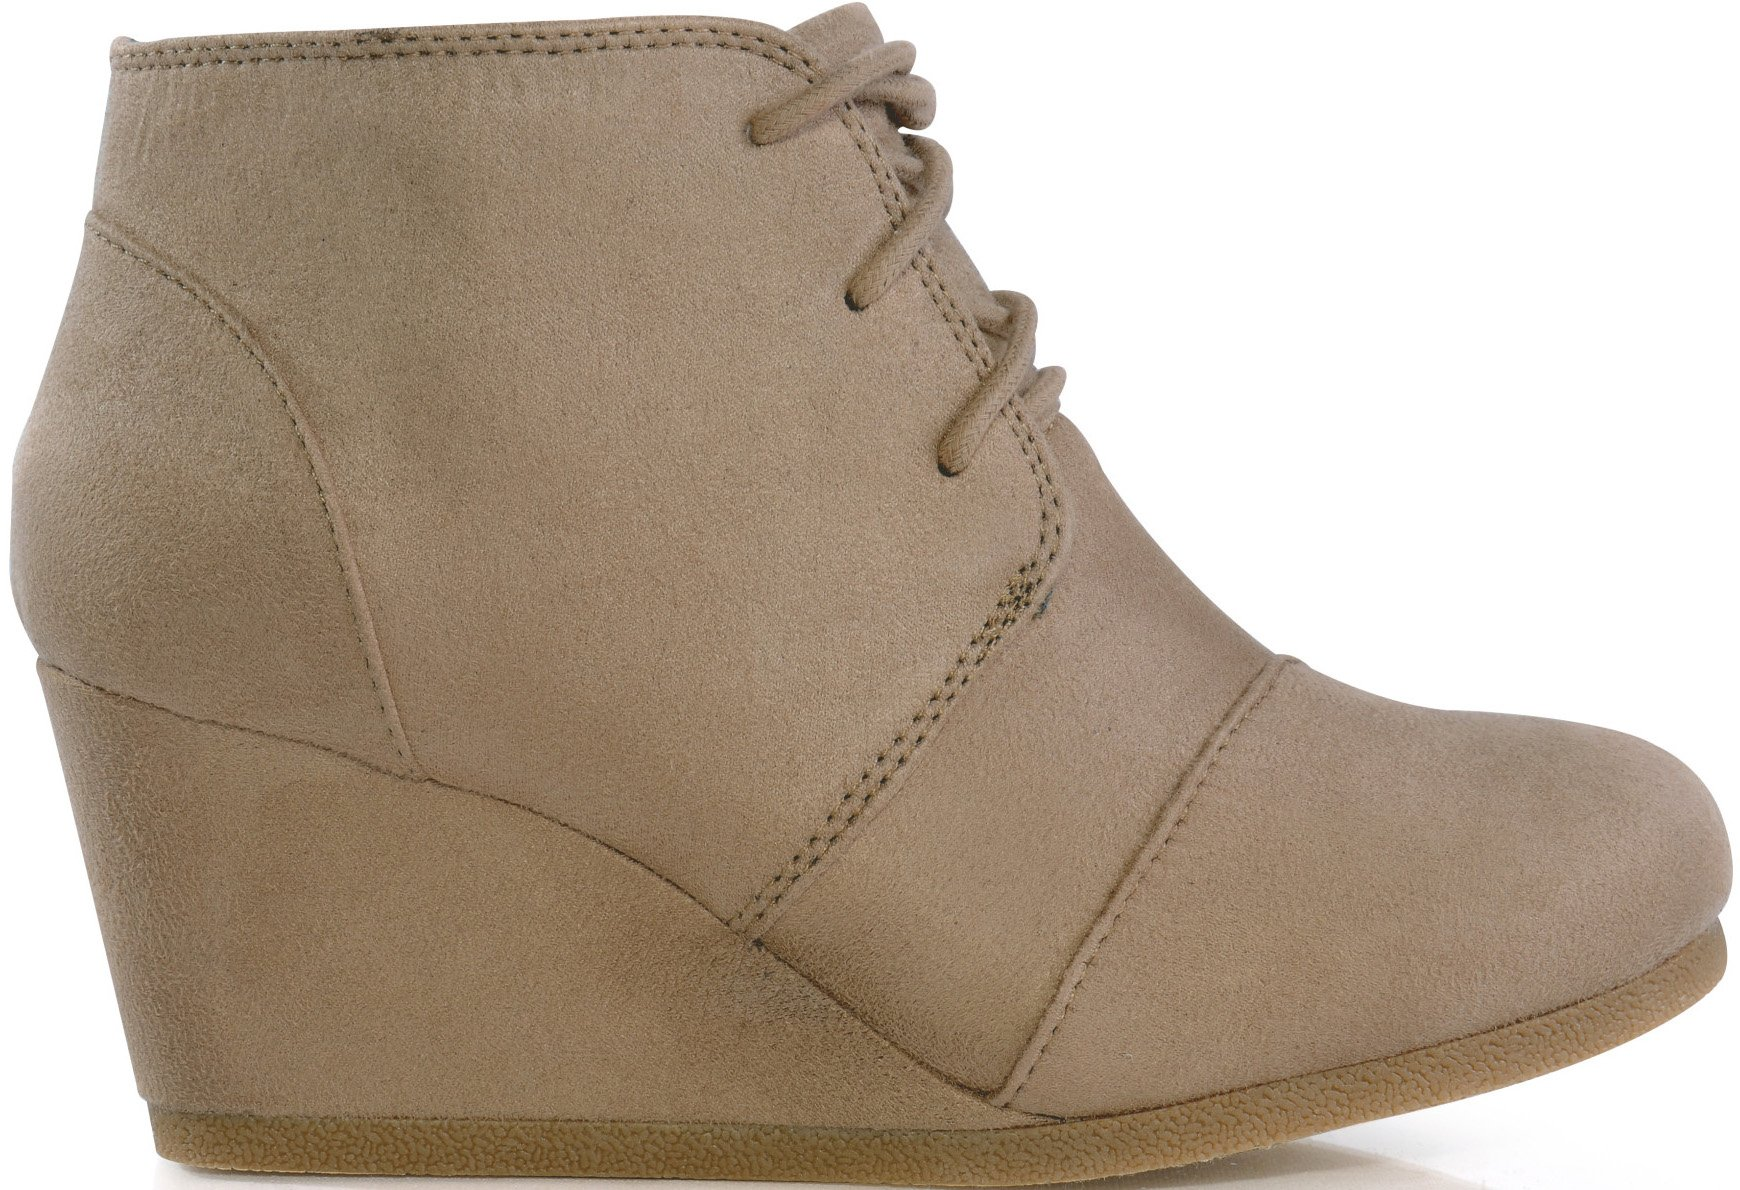 MARCOREPUBLIC Galaxy Womens Wedge Boots - (Taupe) - 10